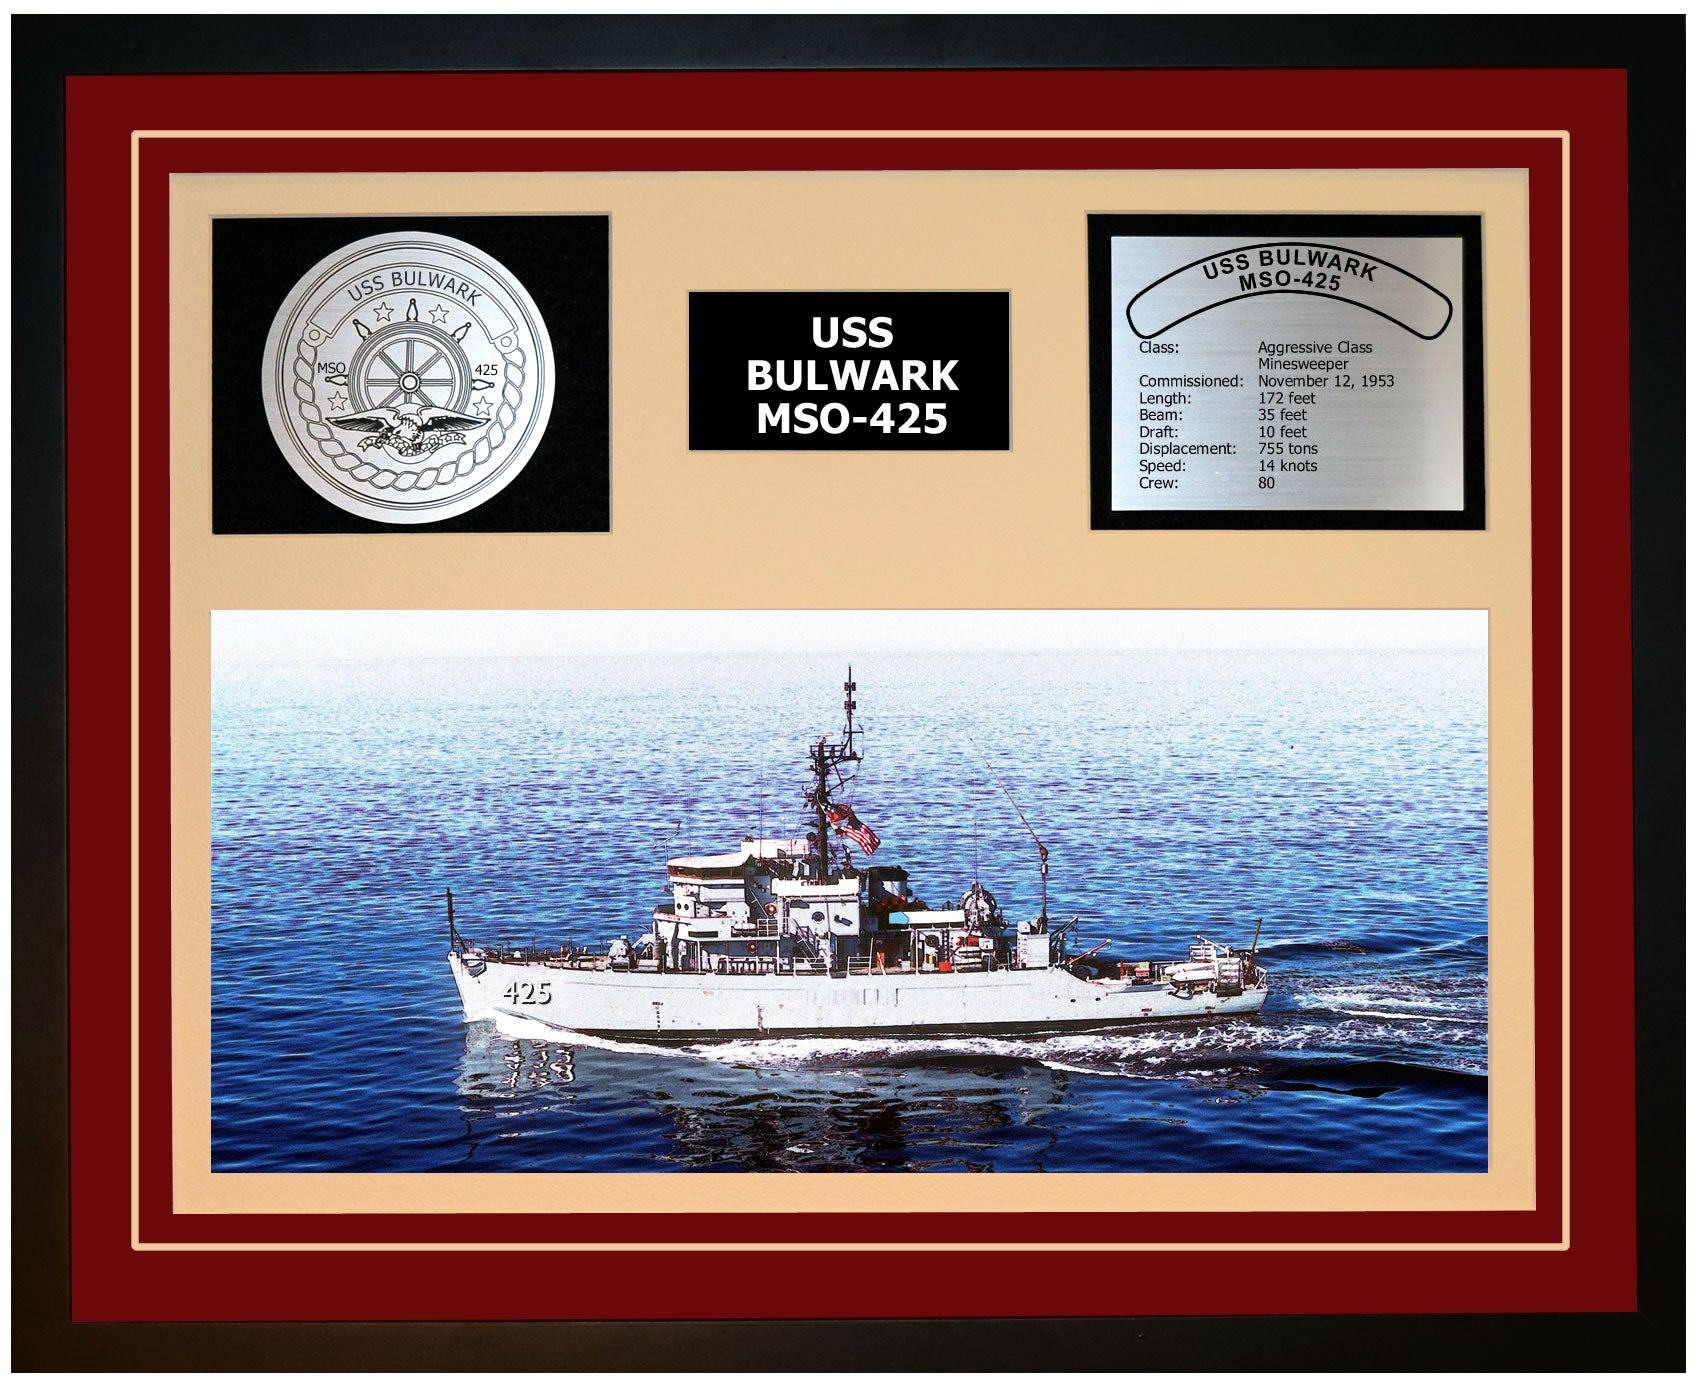 USS BULWARK MSO-425 Framed Navy Ship Display Burgundy